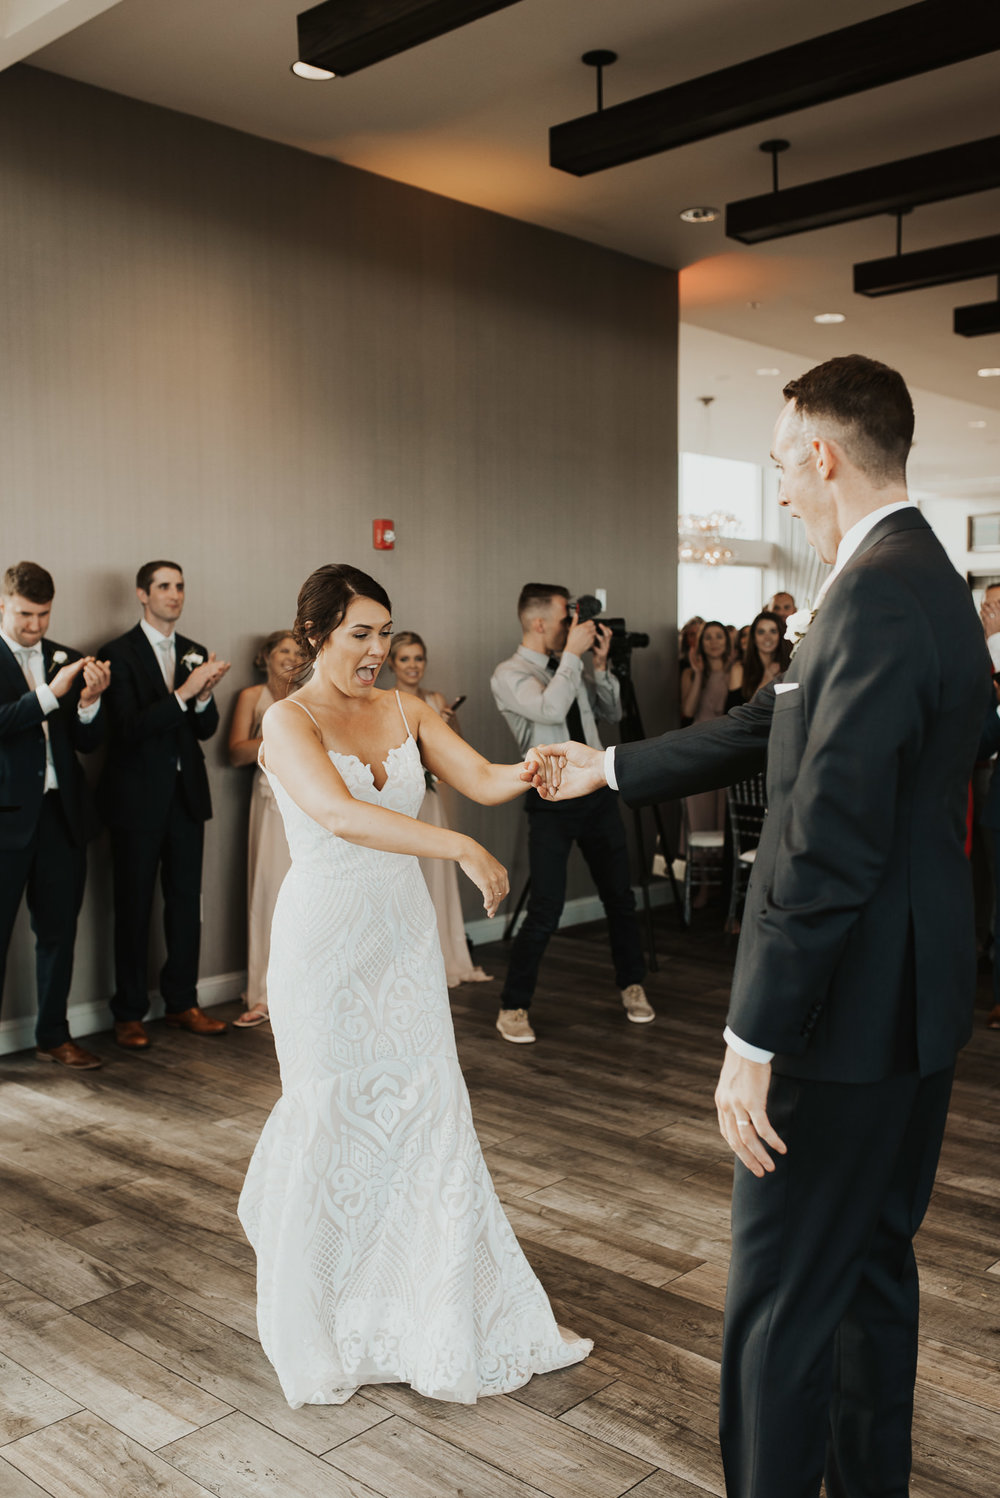 Kaeley+Ryan-146.jpg